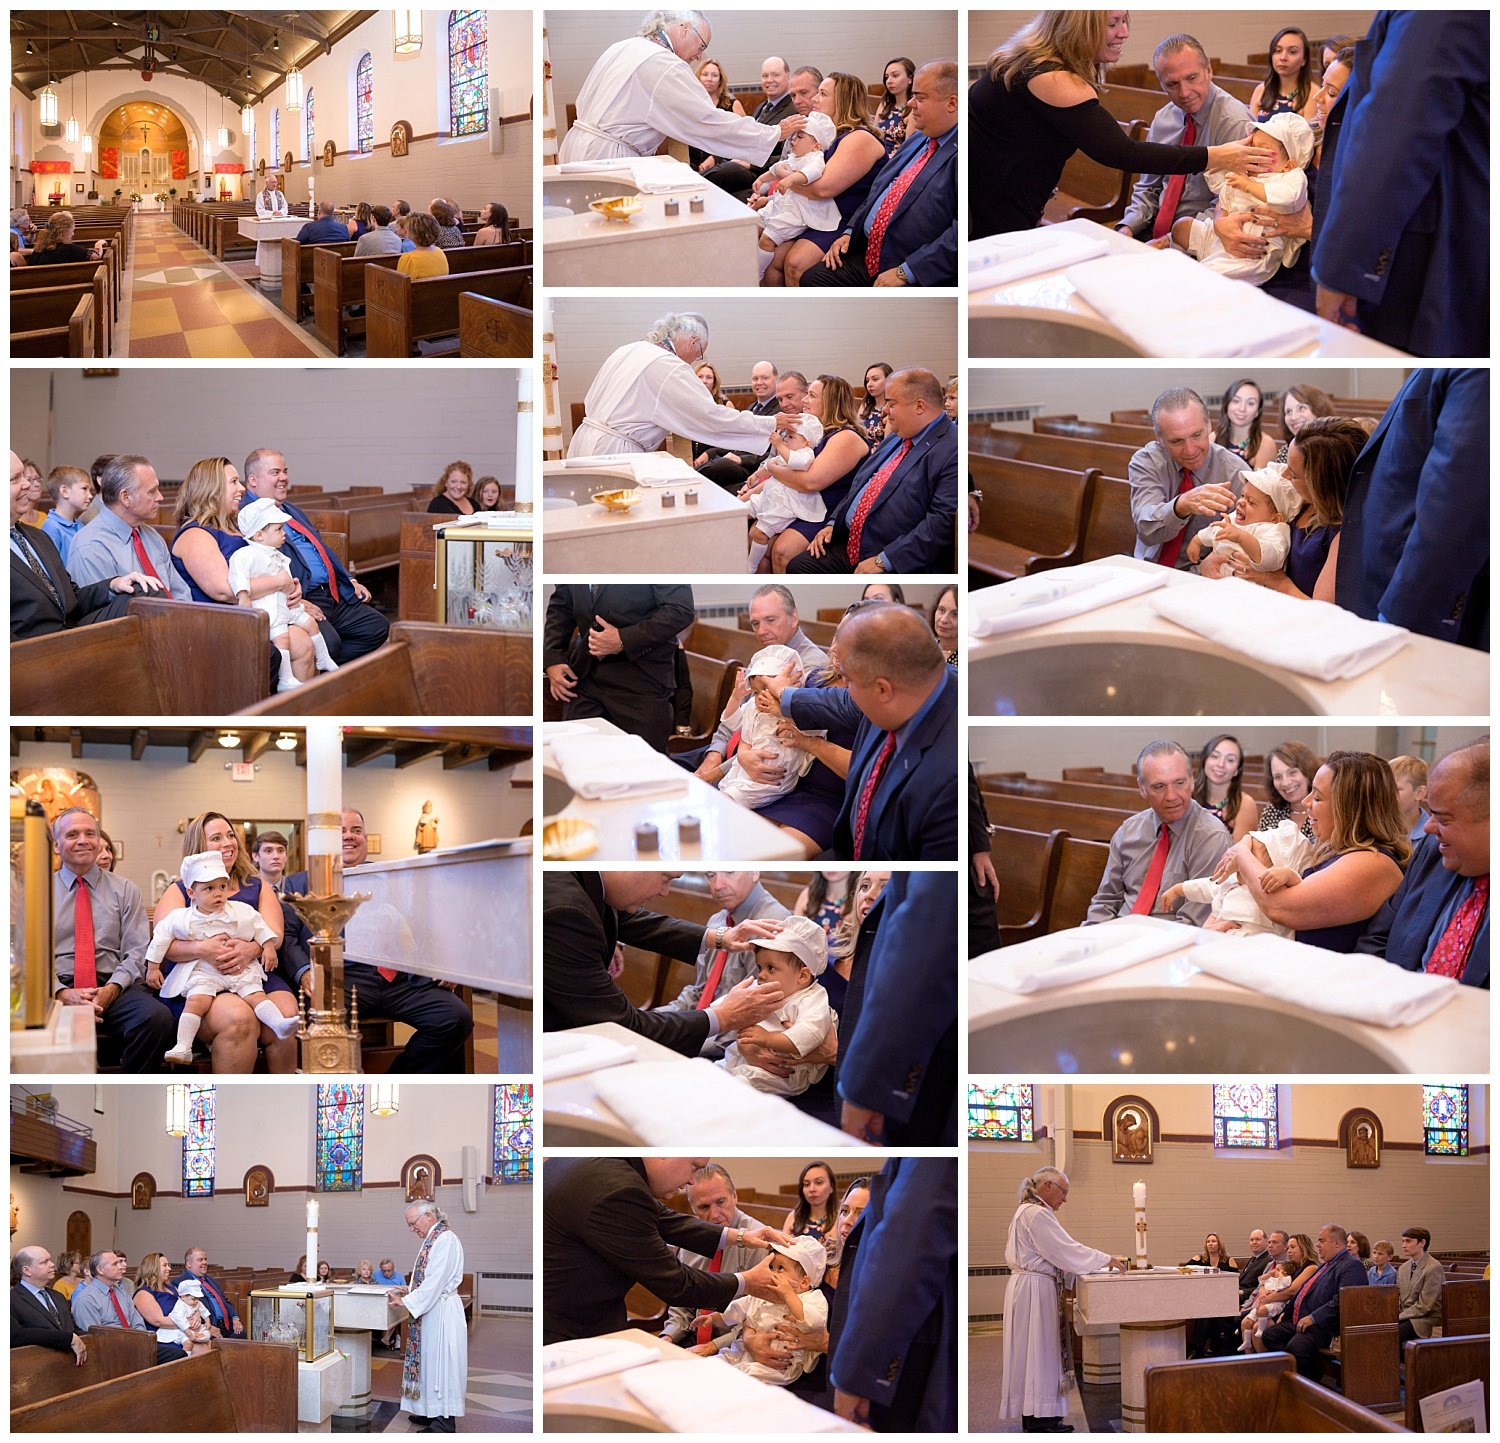 priest performing a baptism on haddonfield new jersey church